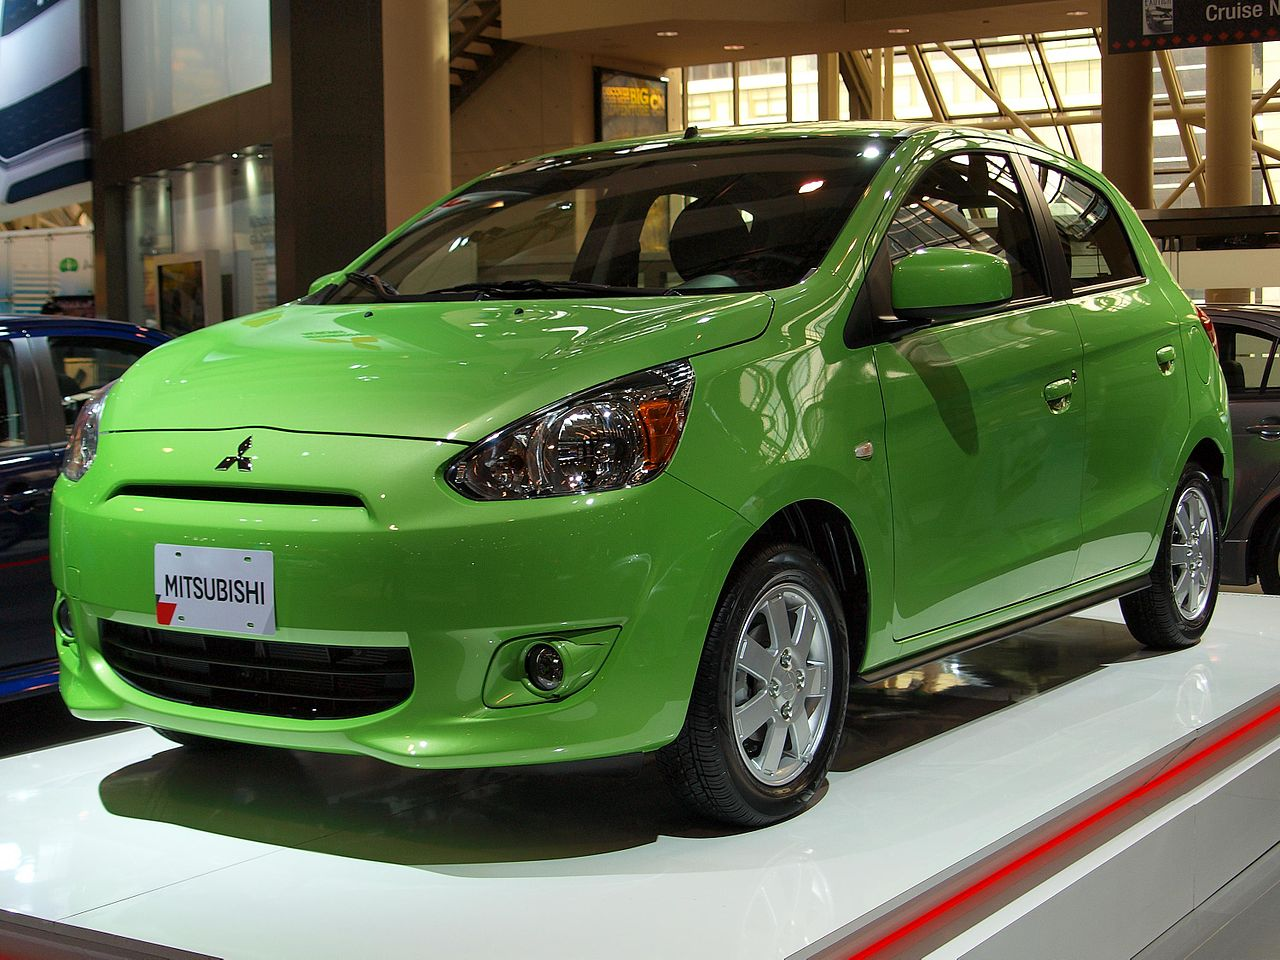 2015 Mitsubishi Mirage Named Most Affordable Vehicle by Cars.com - Live Trading News | Live Trading News